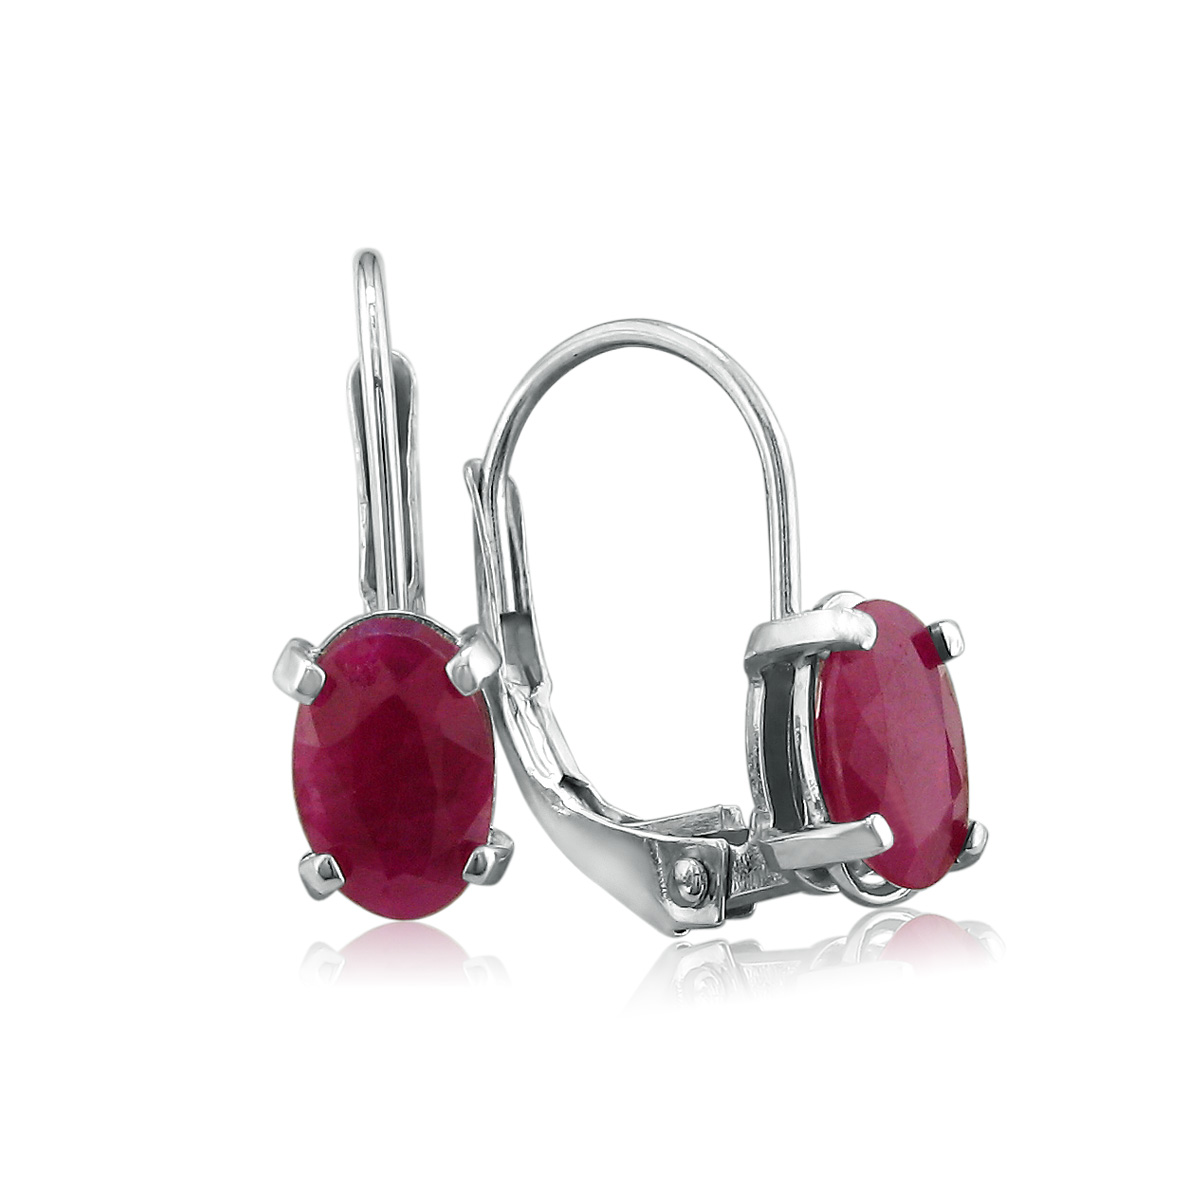 1 1 4ct Oval Ruby Earrings in Sterling Silver